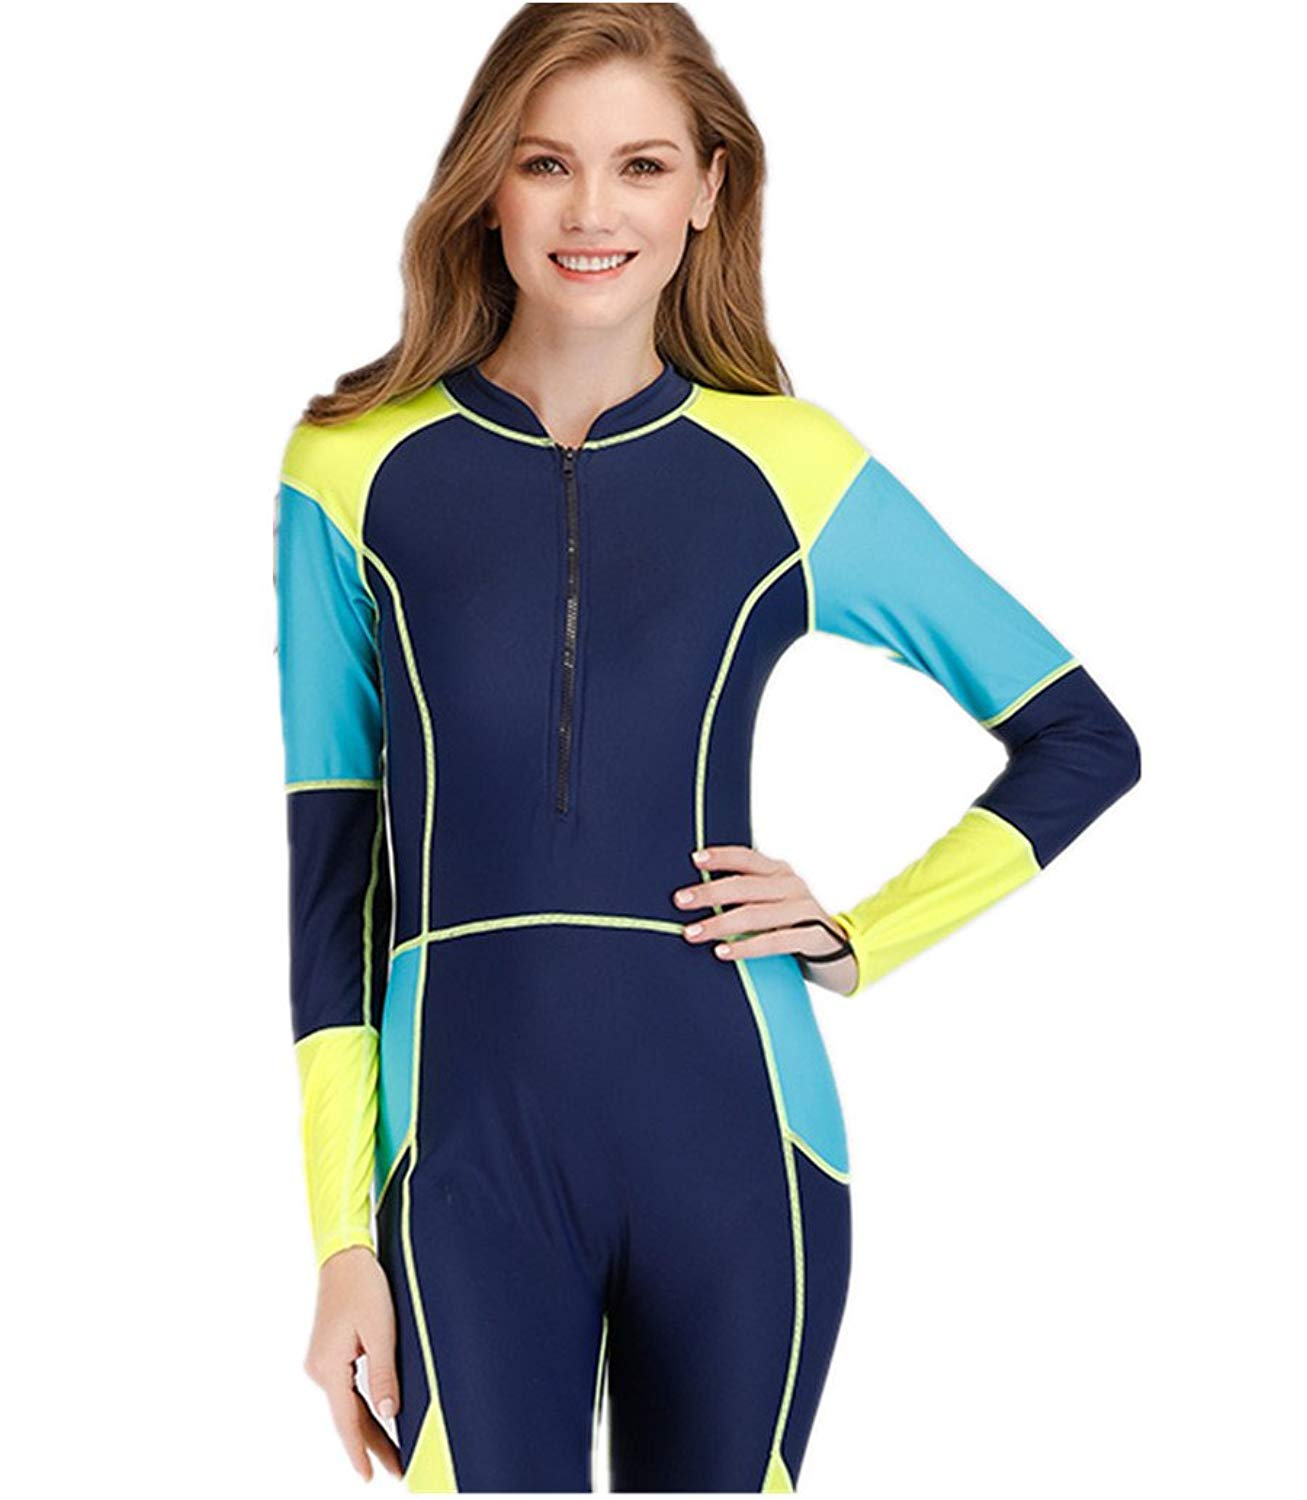 CaptainSwim Mens One piece Swimwear Full Cover Wetsuits